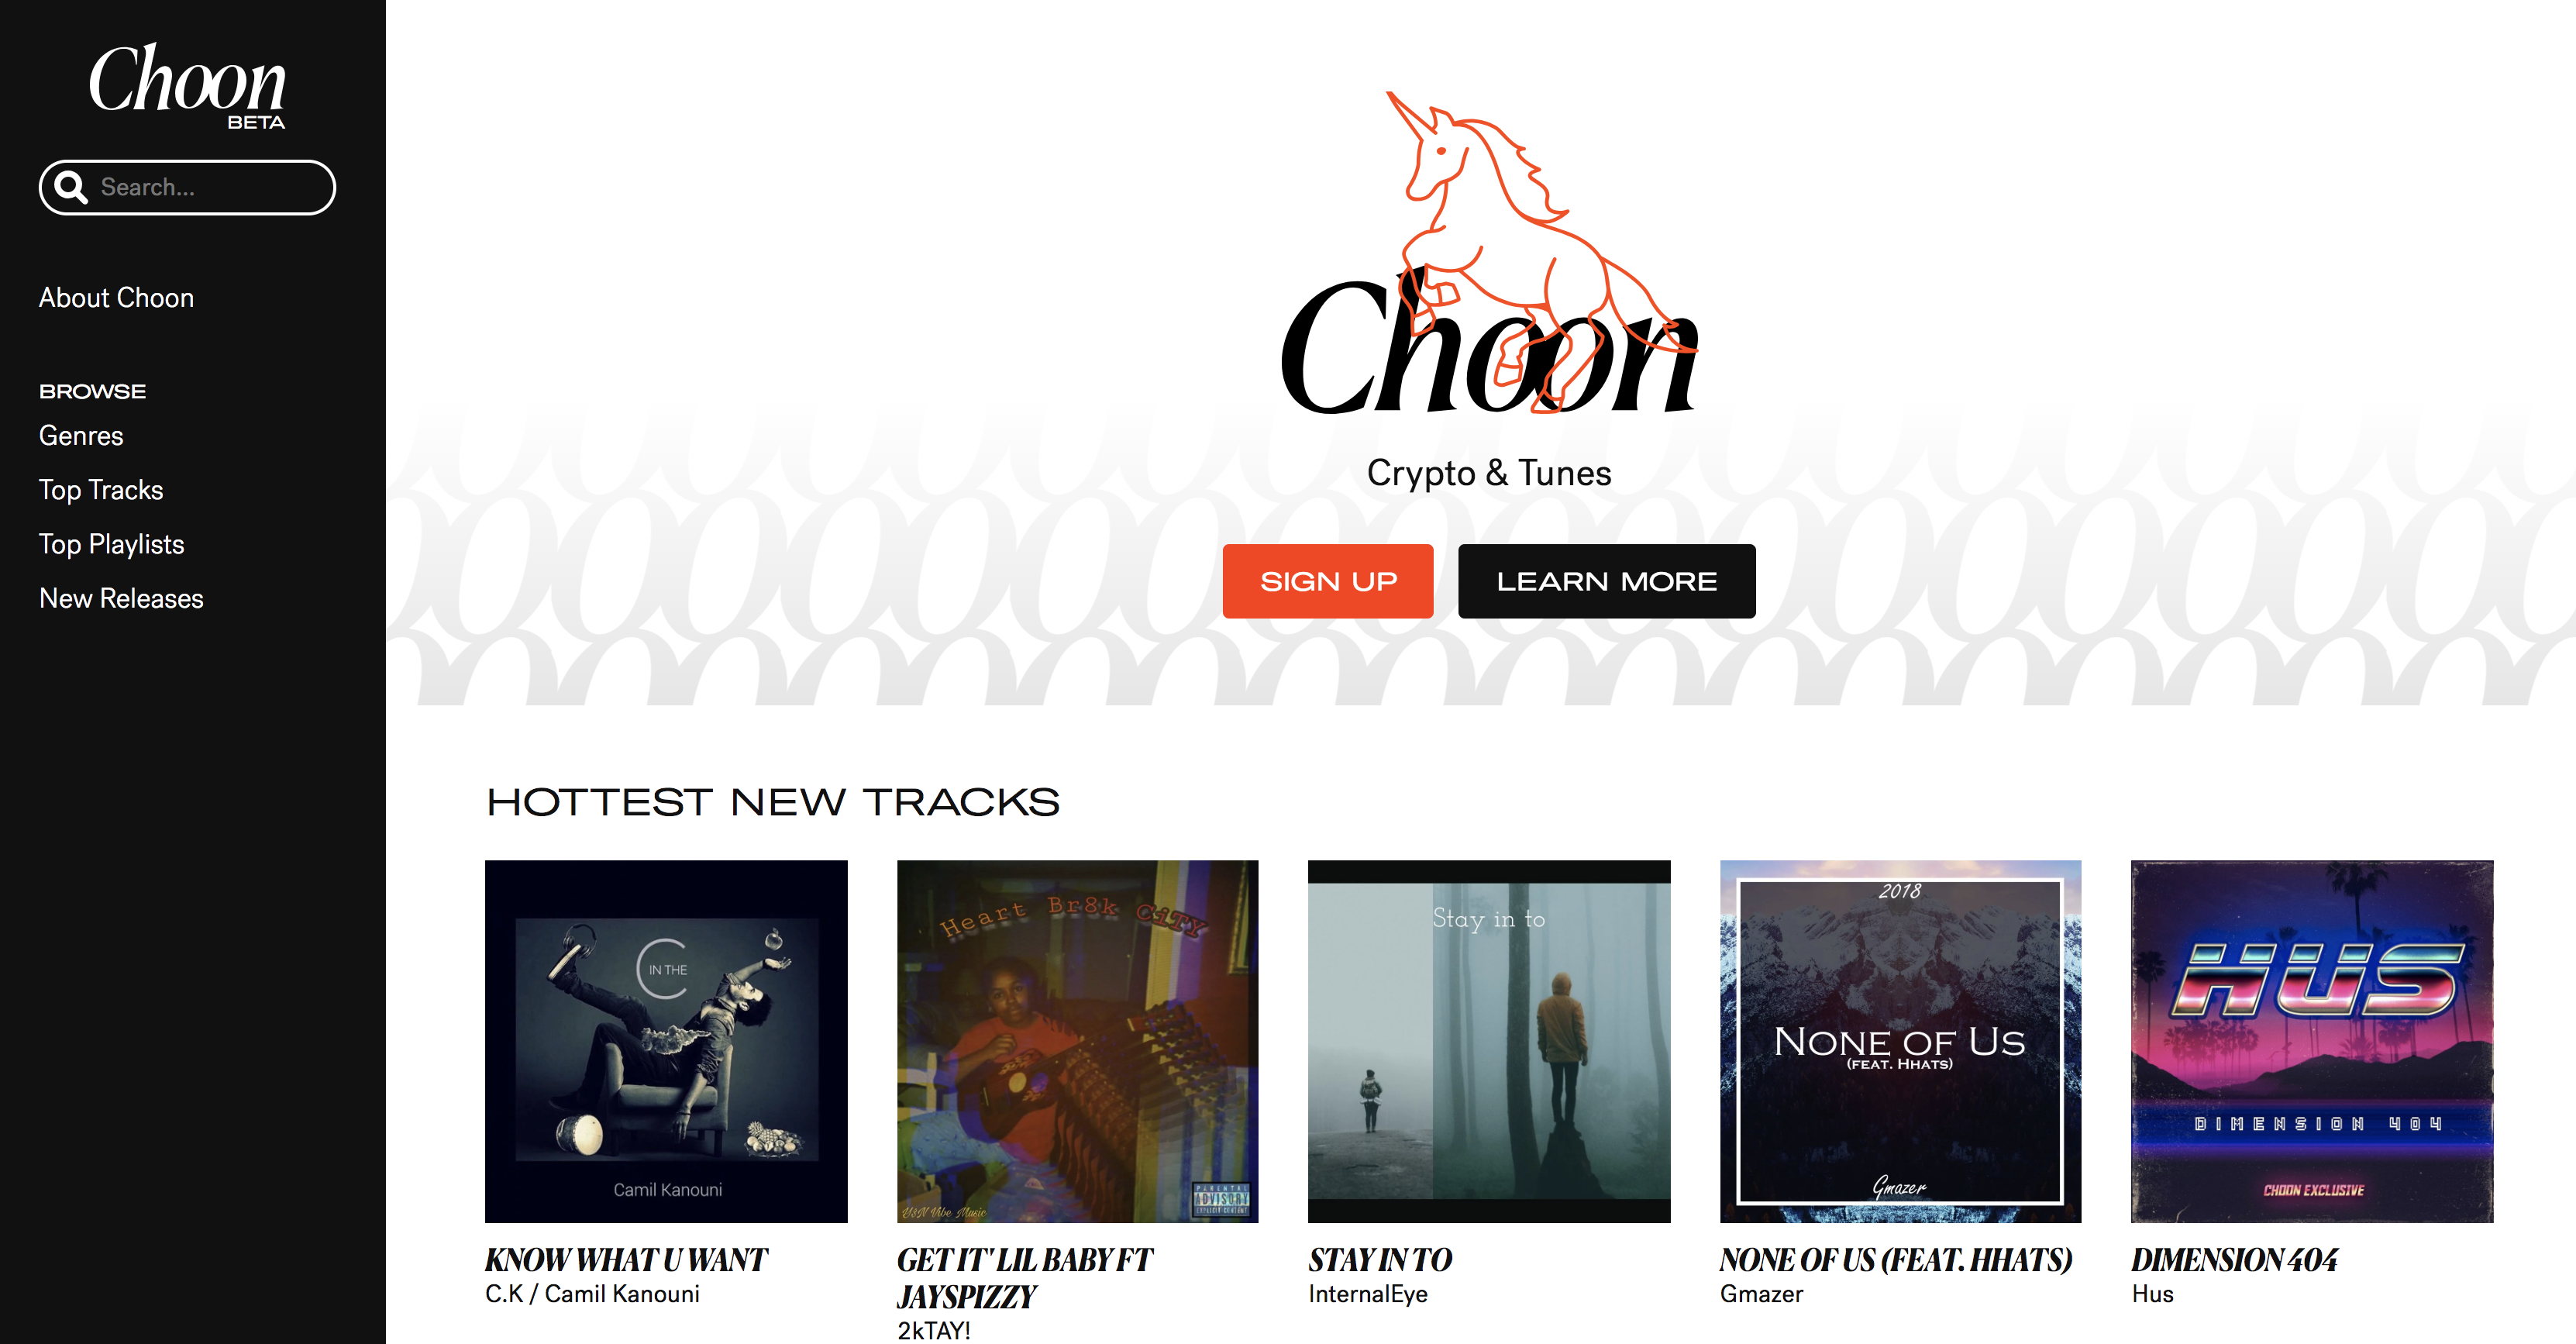 Choon music streaming service